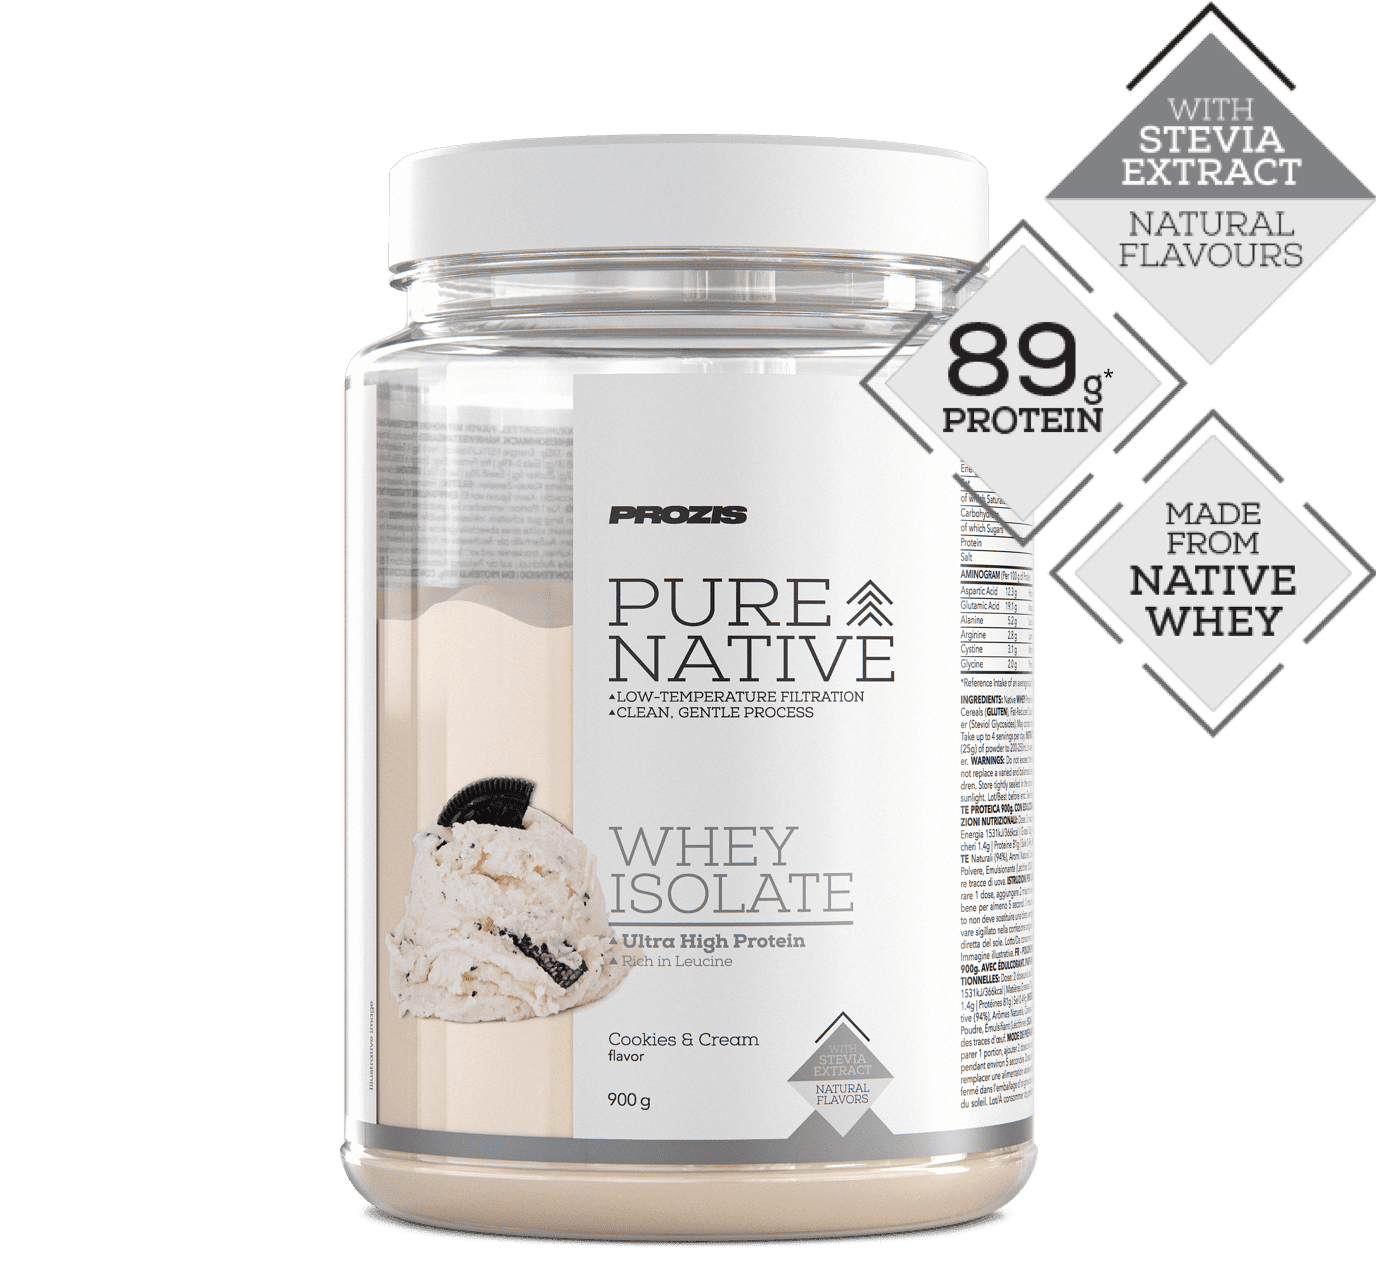 Pure Native Whey Isolate Stevia